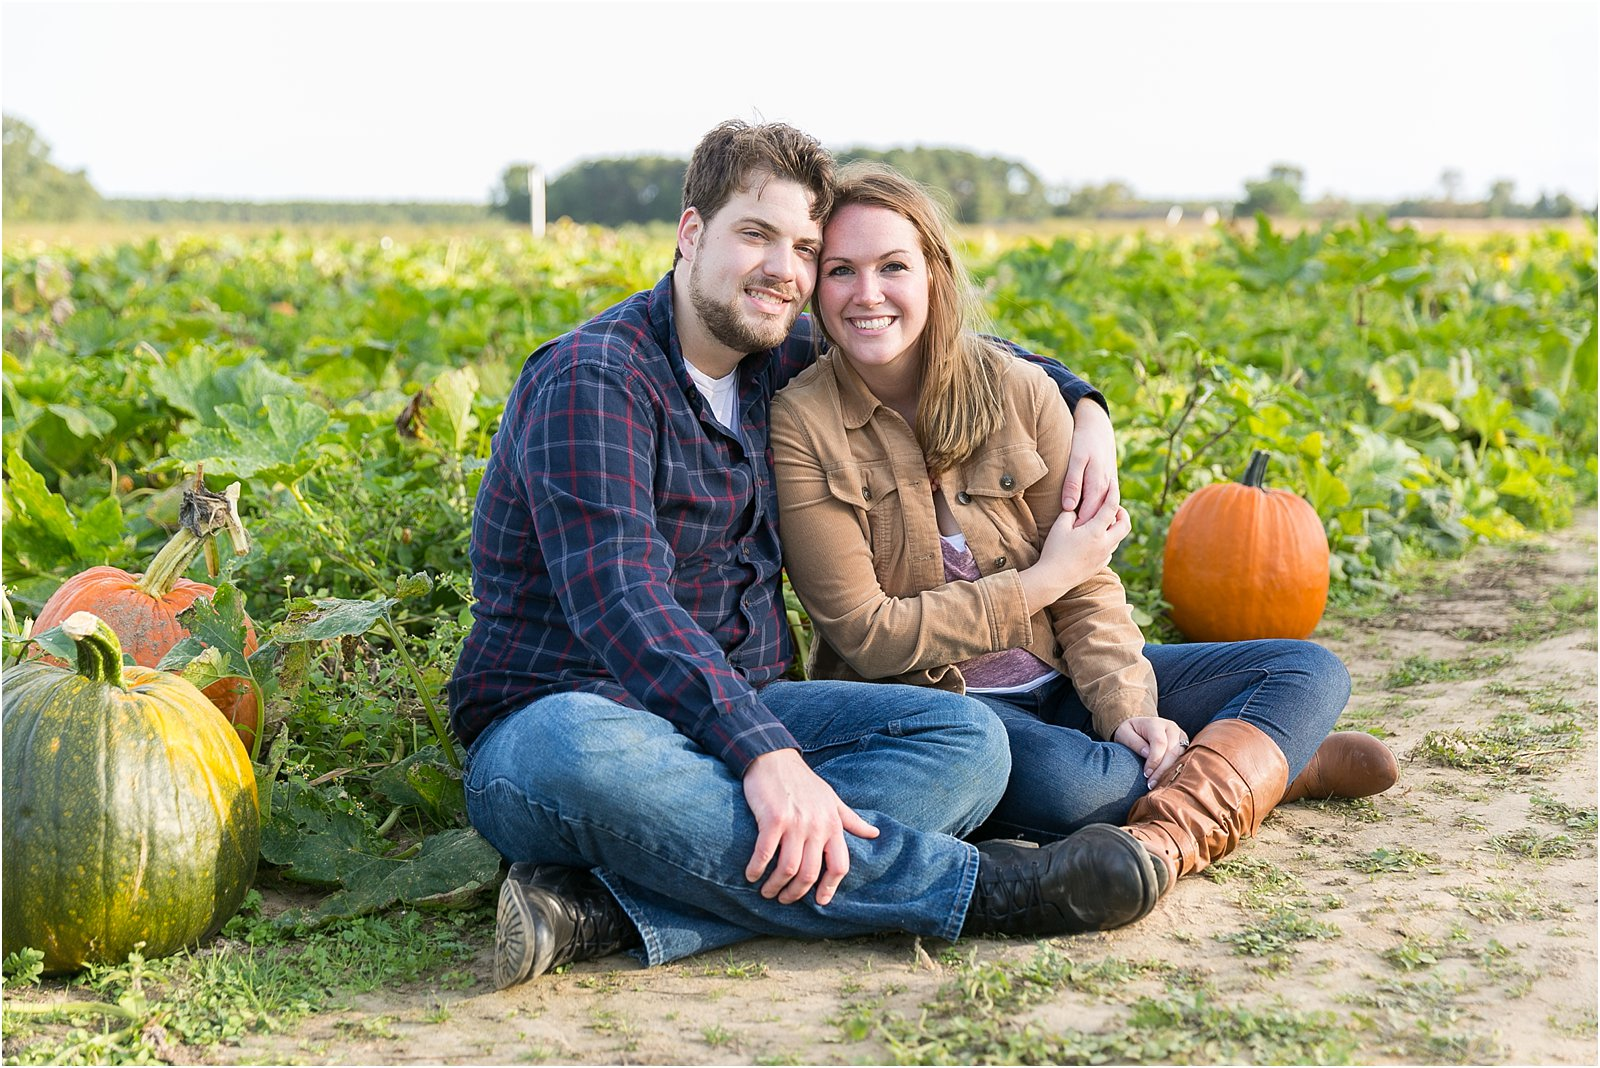 jessica_ryan_photography_pumpkin_patch_engagement_portraits_fall_october_engagements_virginia_beach_chesapeake_0291